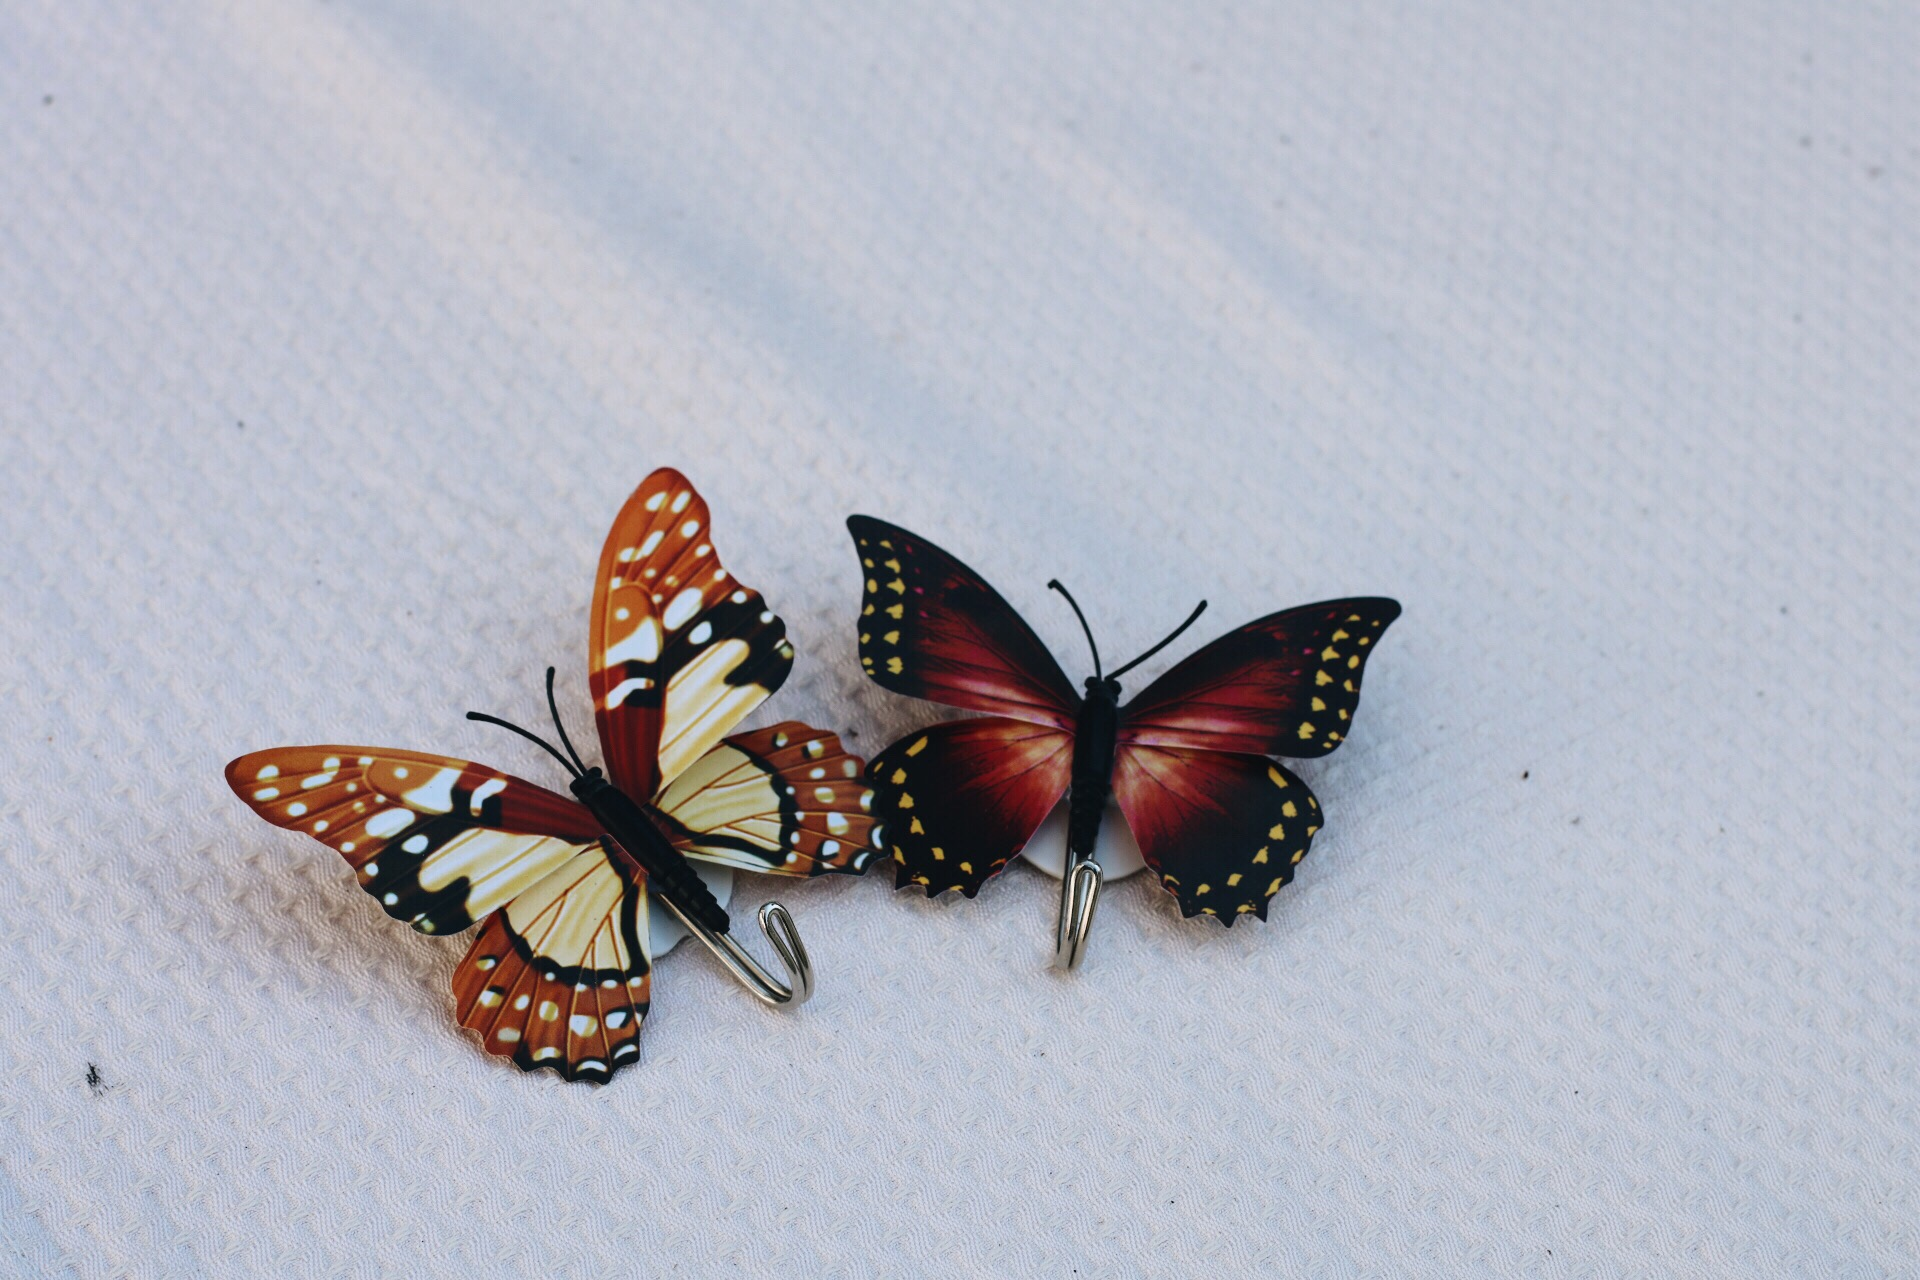 Brown And Black Butterfly Shower Curtain Hooks On White